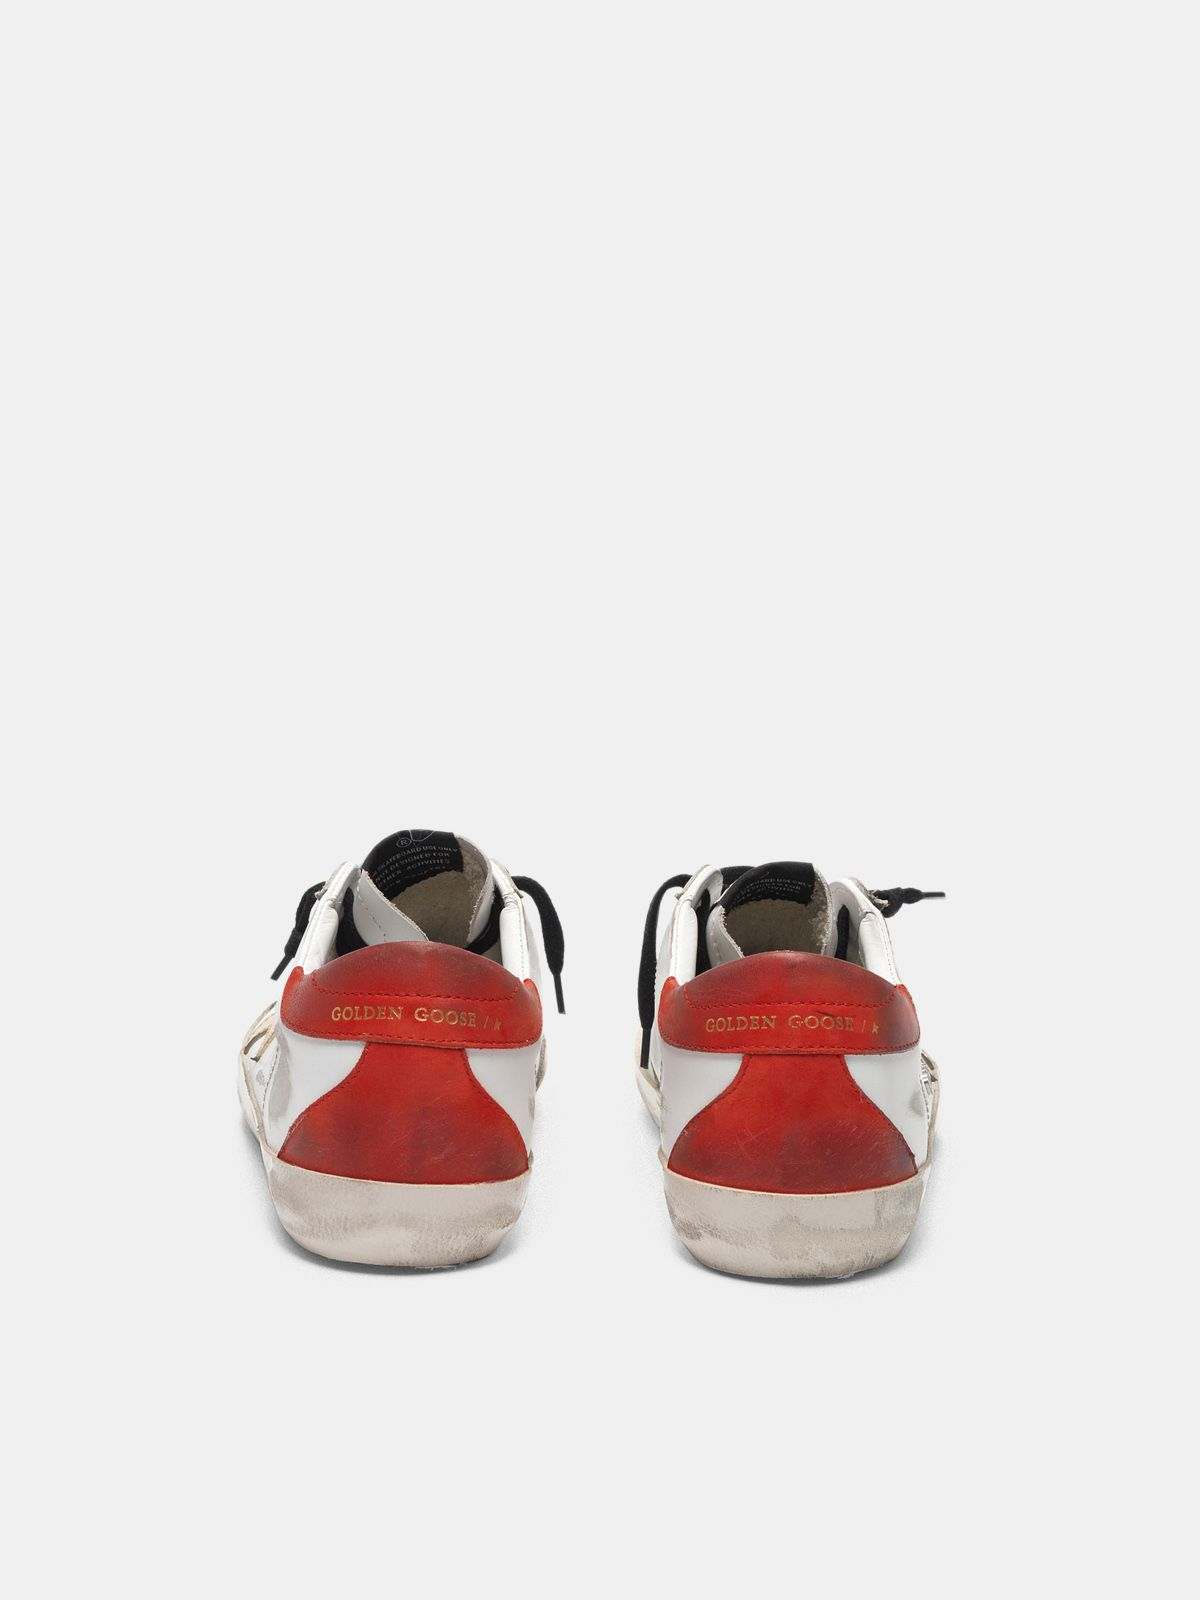 Golden Goose - White Super-Star sneakers with red rear and black laces in